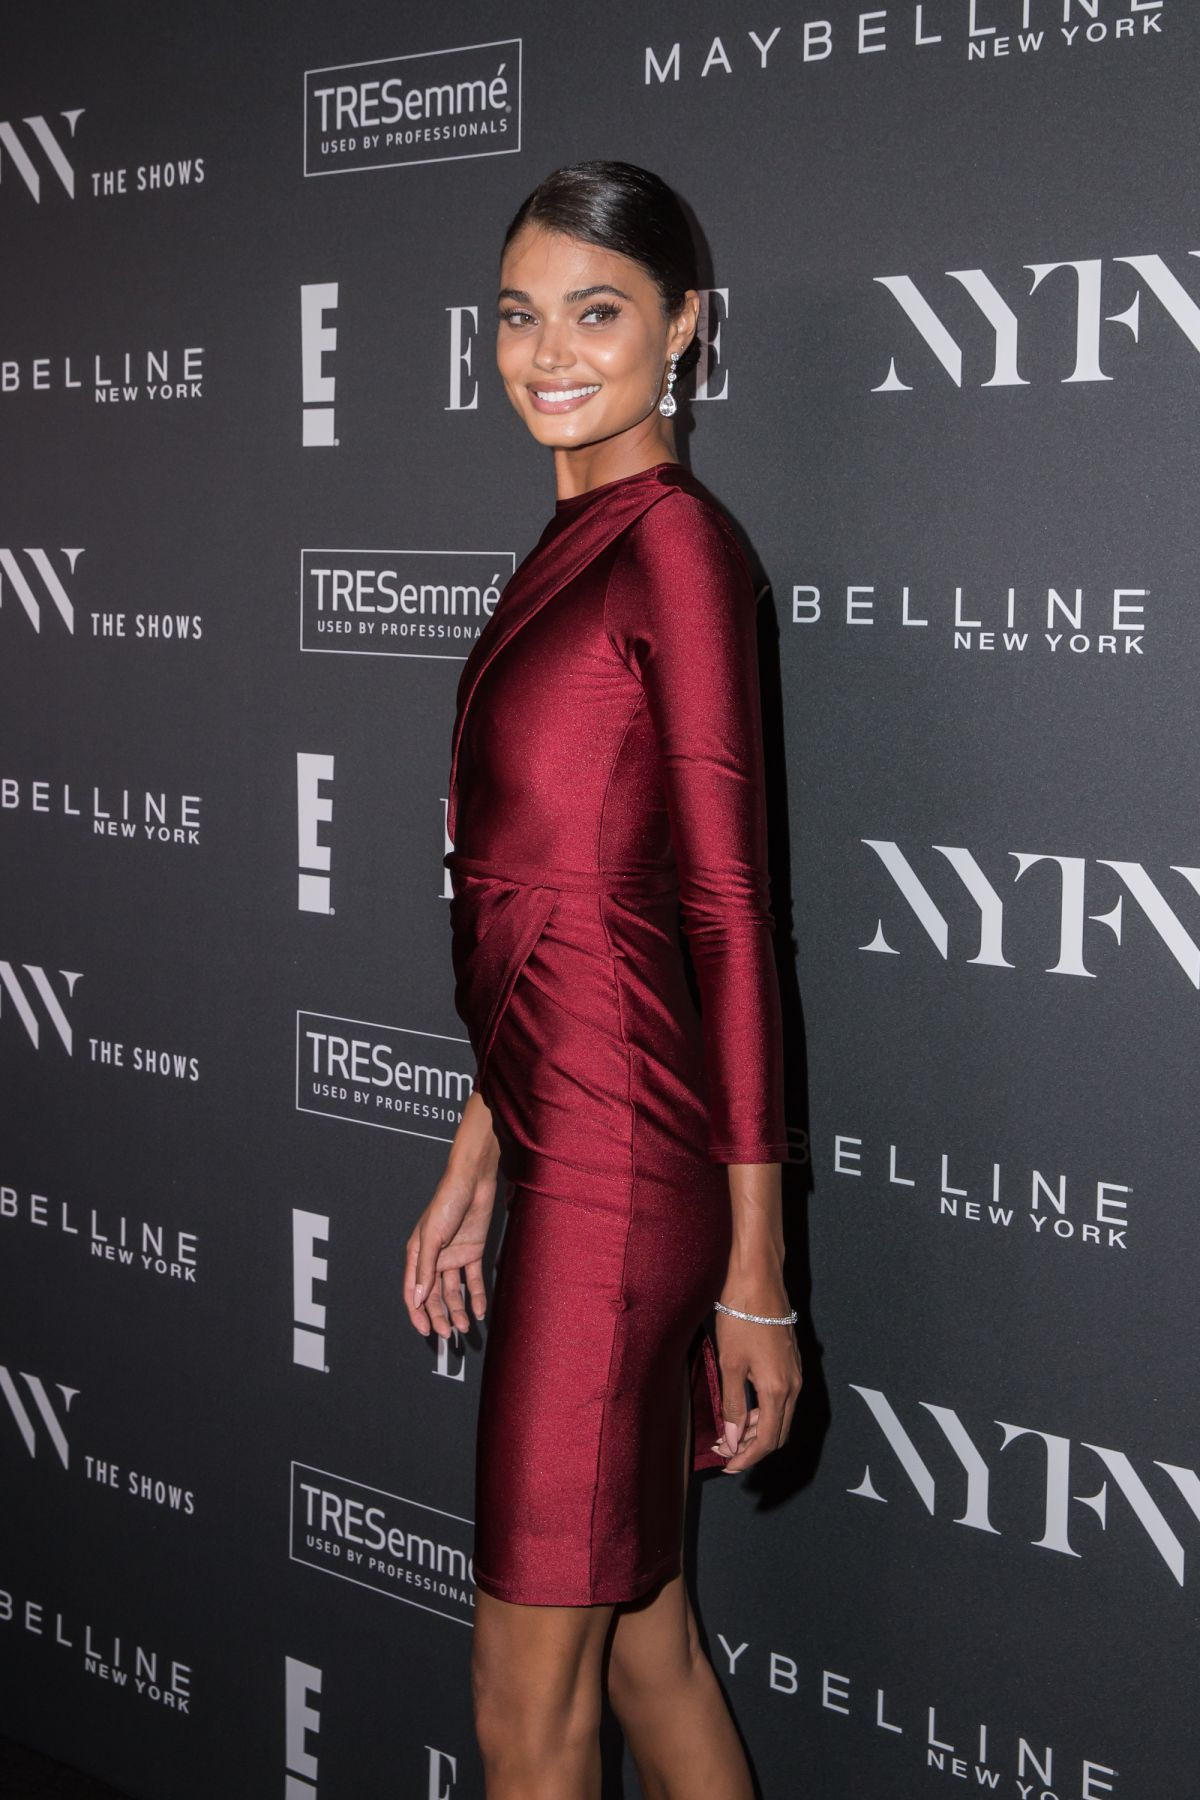 daniela-braga-at-e-elle-and-img-party-in-new-york-09-05-2018-5.jpg